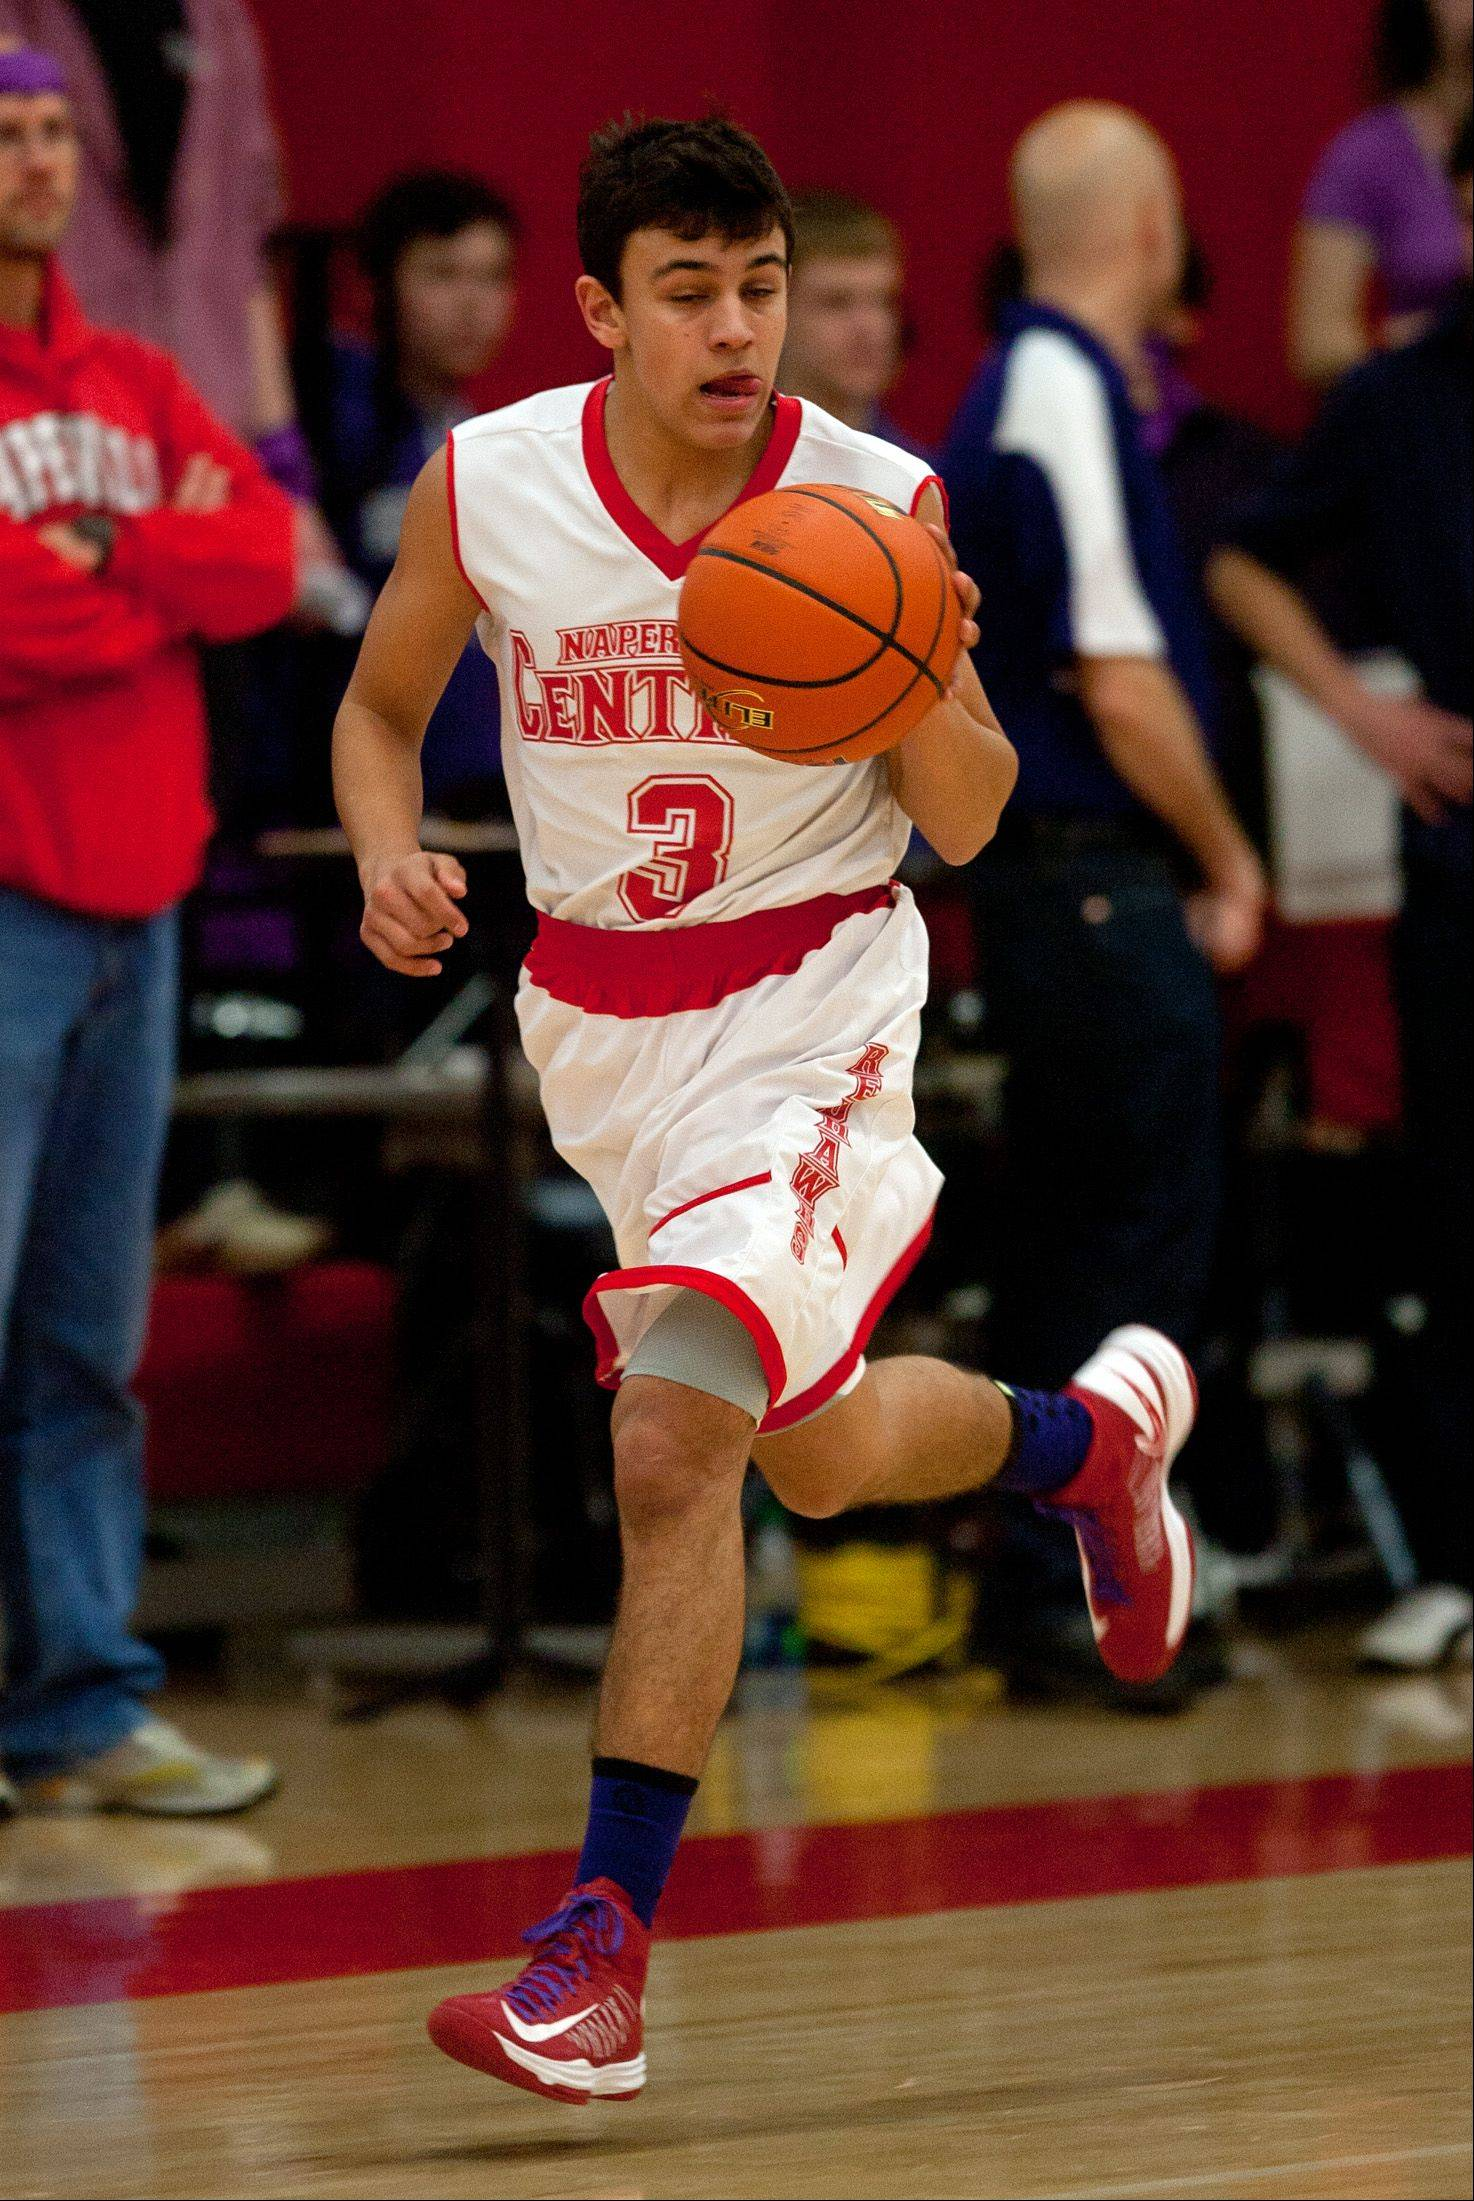 Naperville Central High School hosted Naperville North High School for boys� basketball, Friday January 11, 2013.